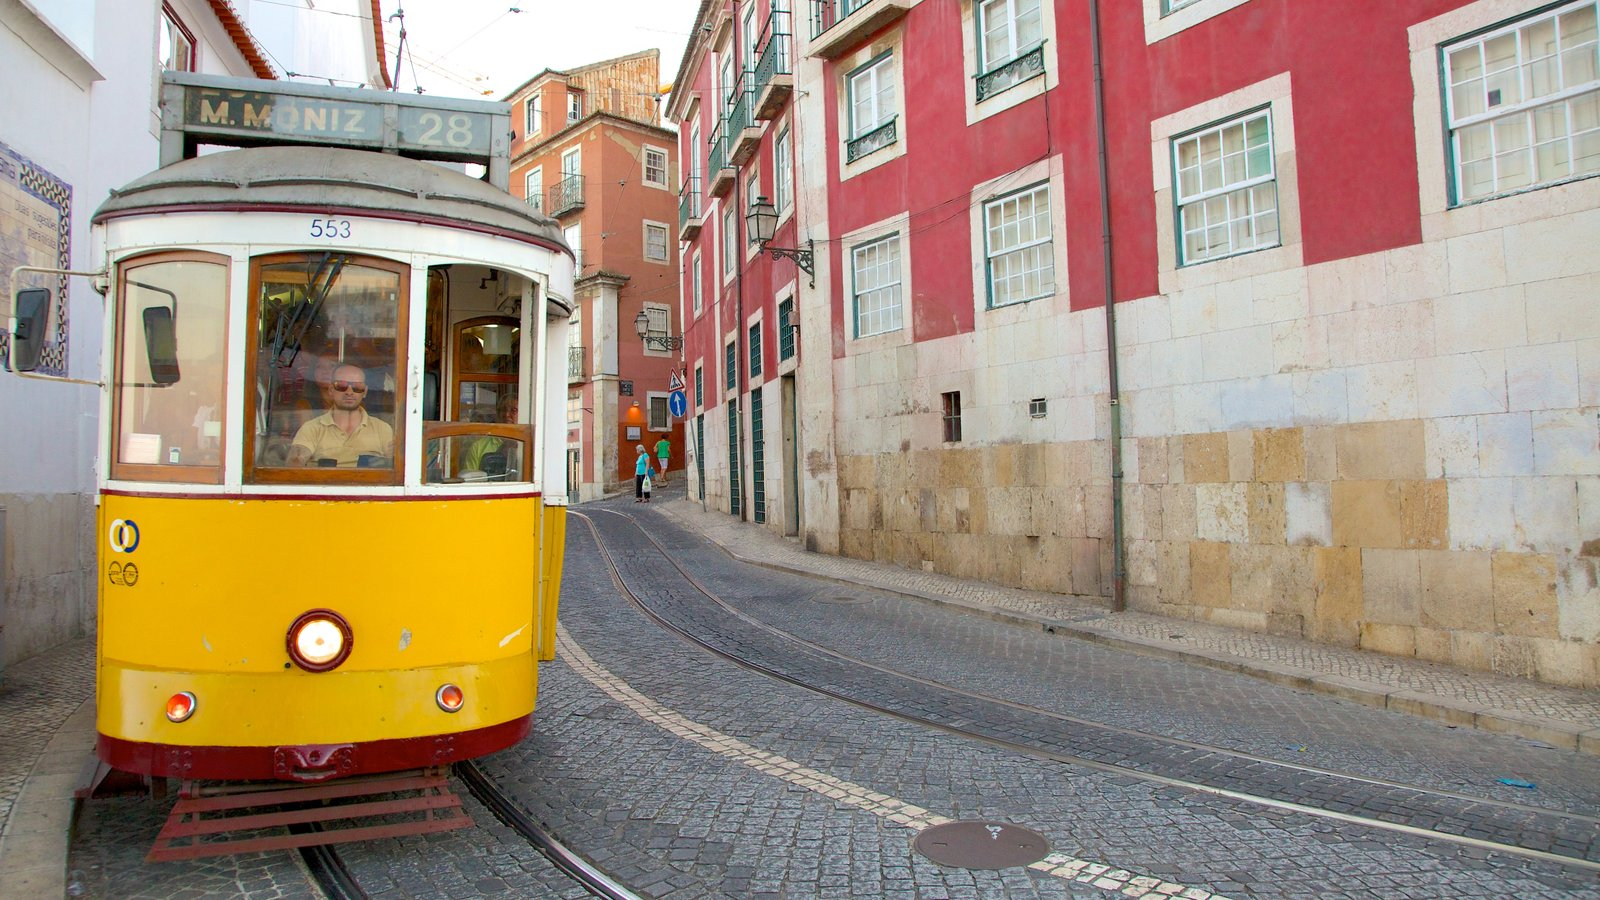 Alfama showing railway items